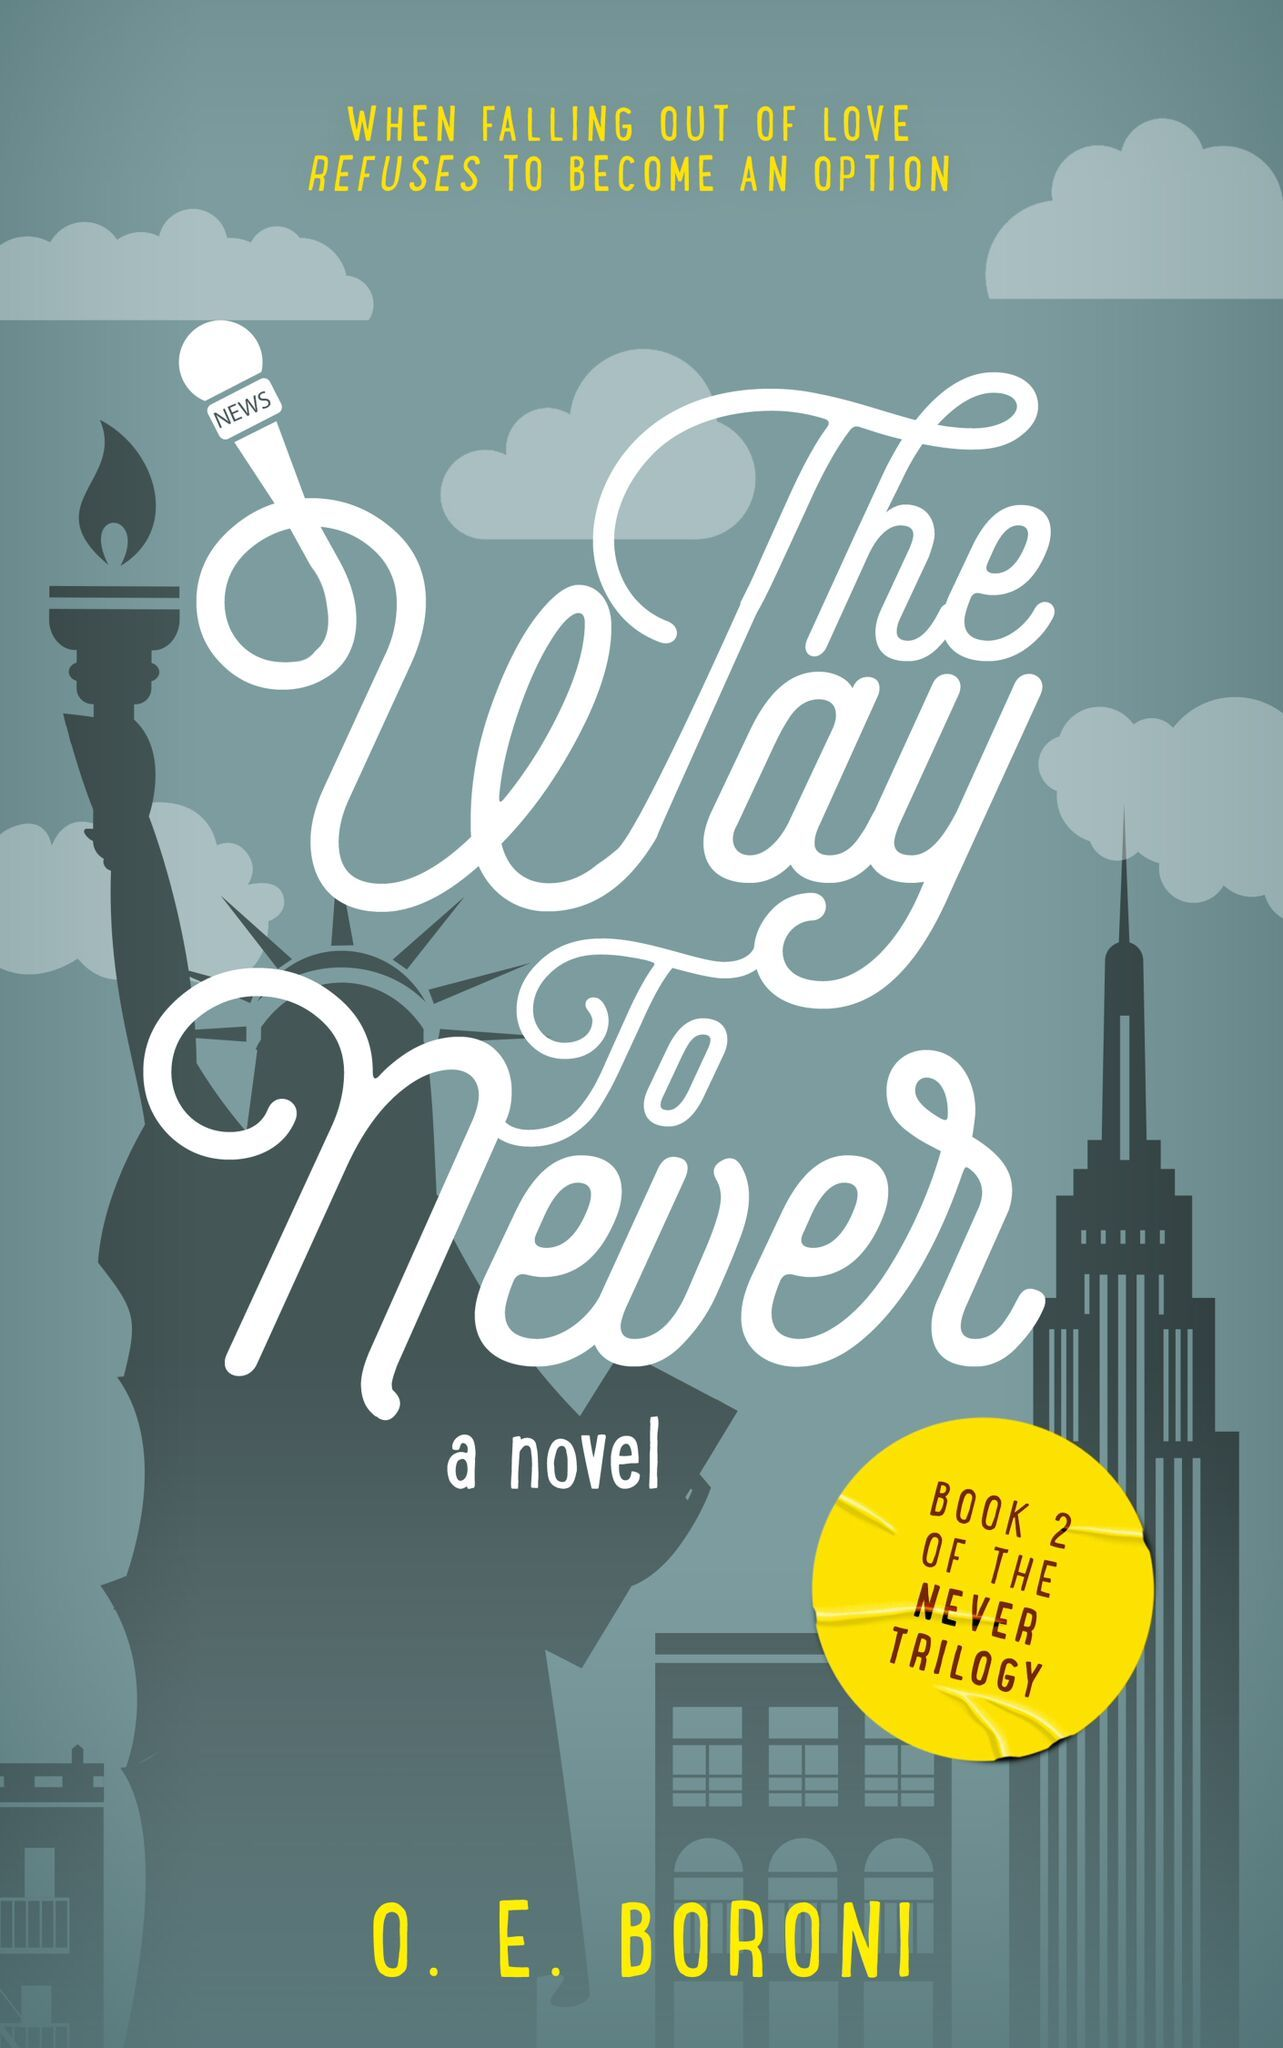 The Way To Never (The Never Trilogy #2) O.E. Boroni